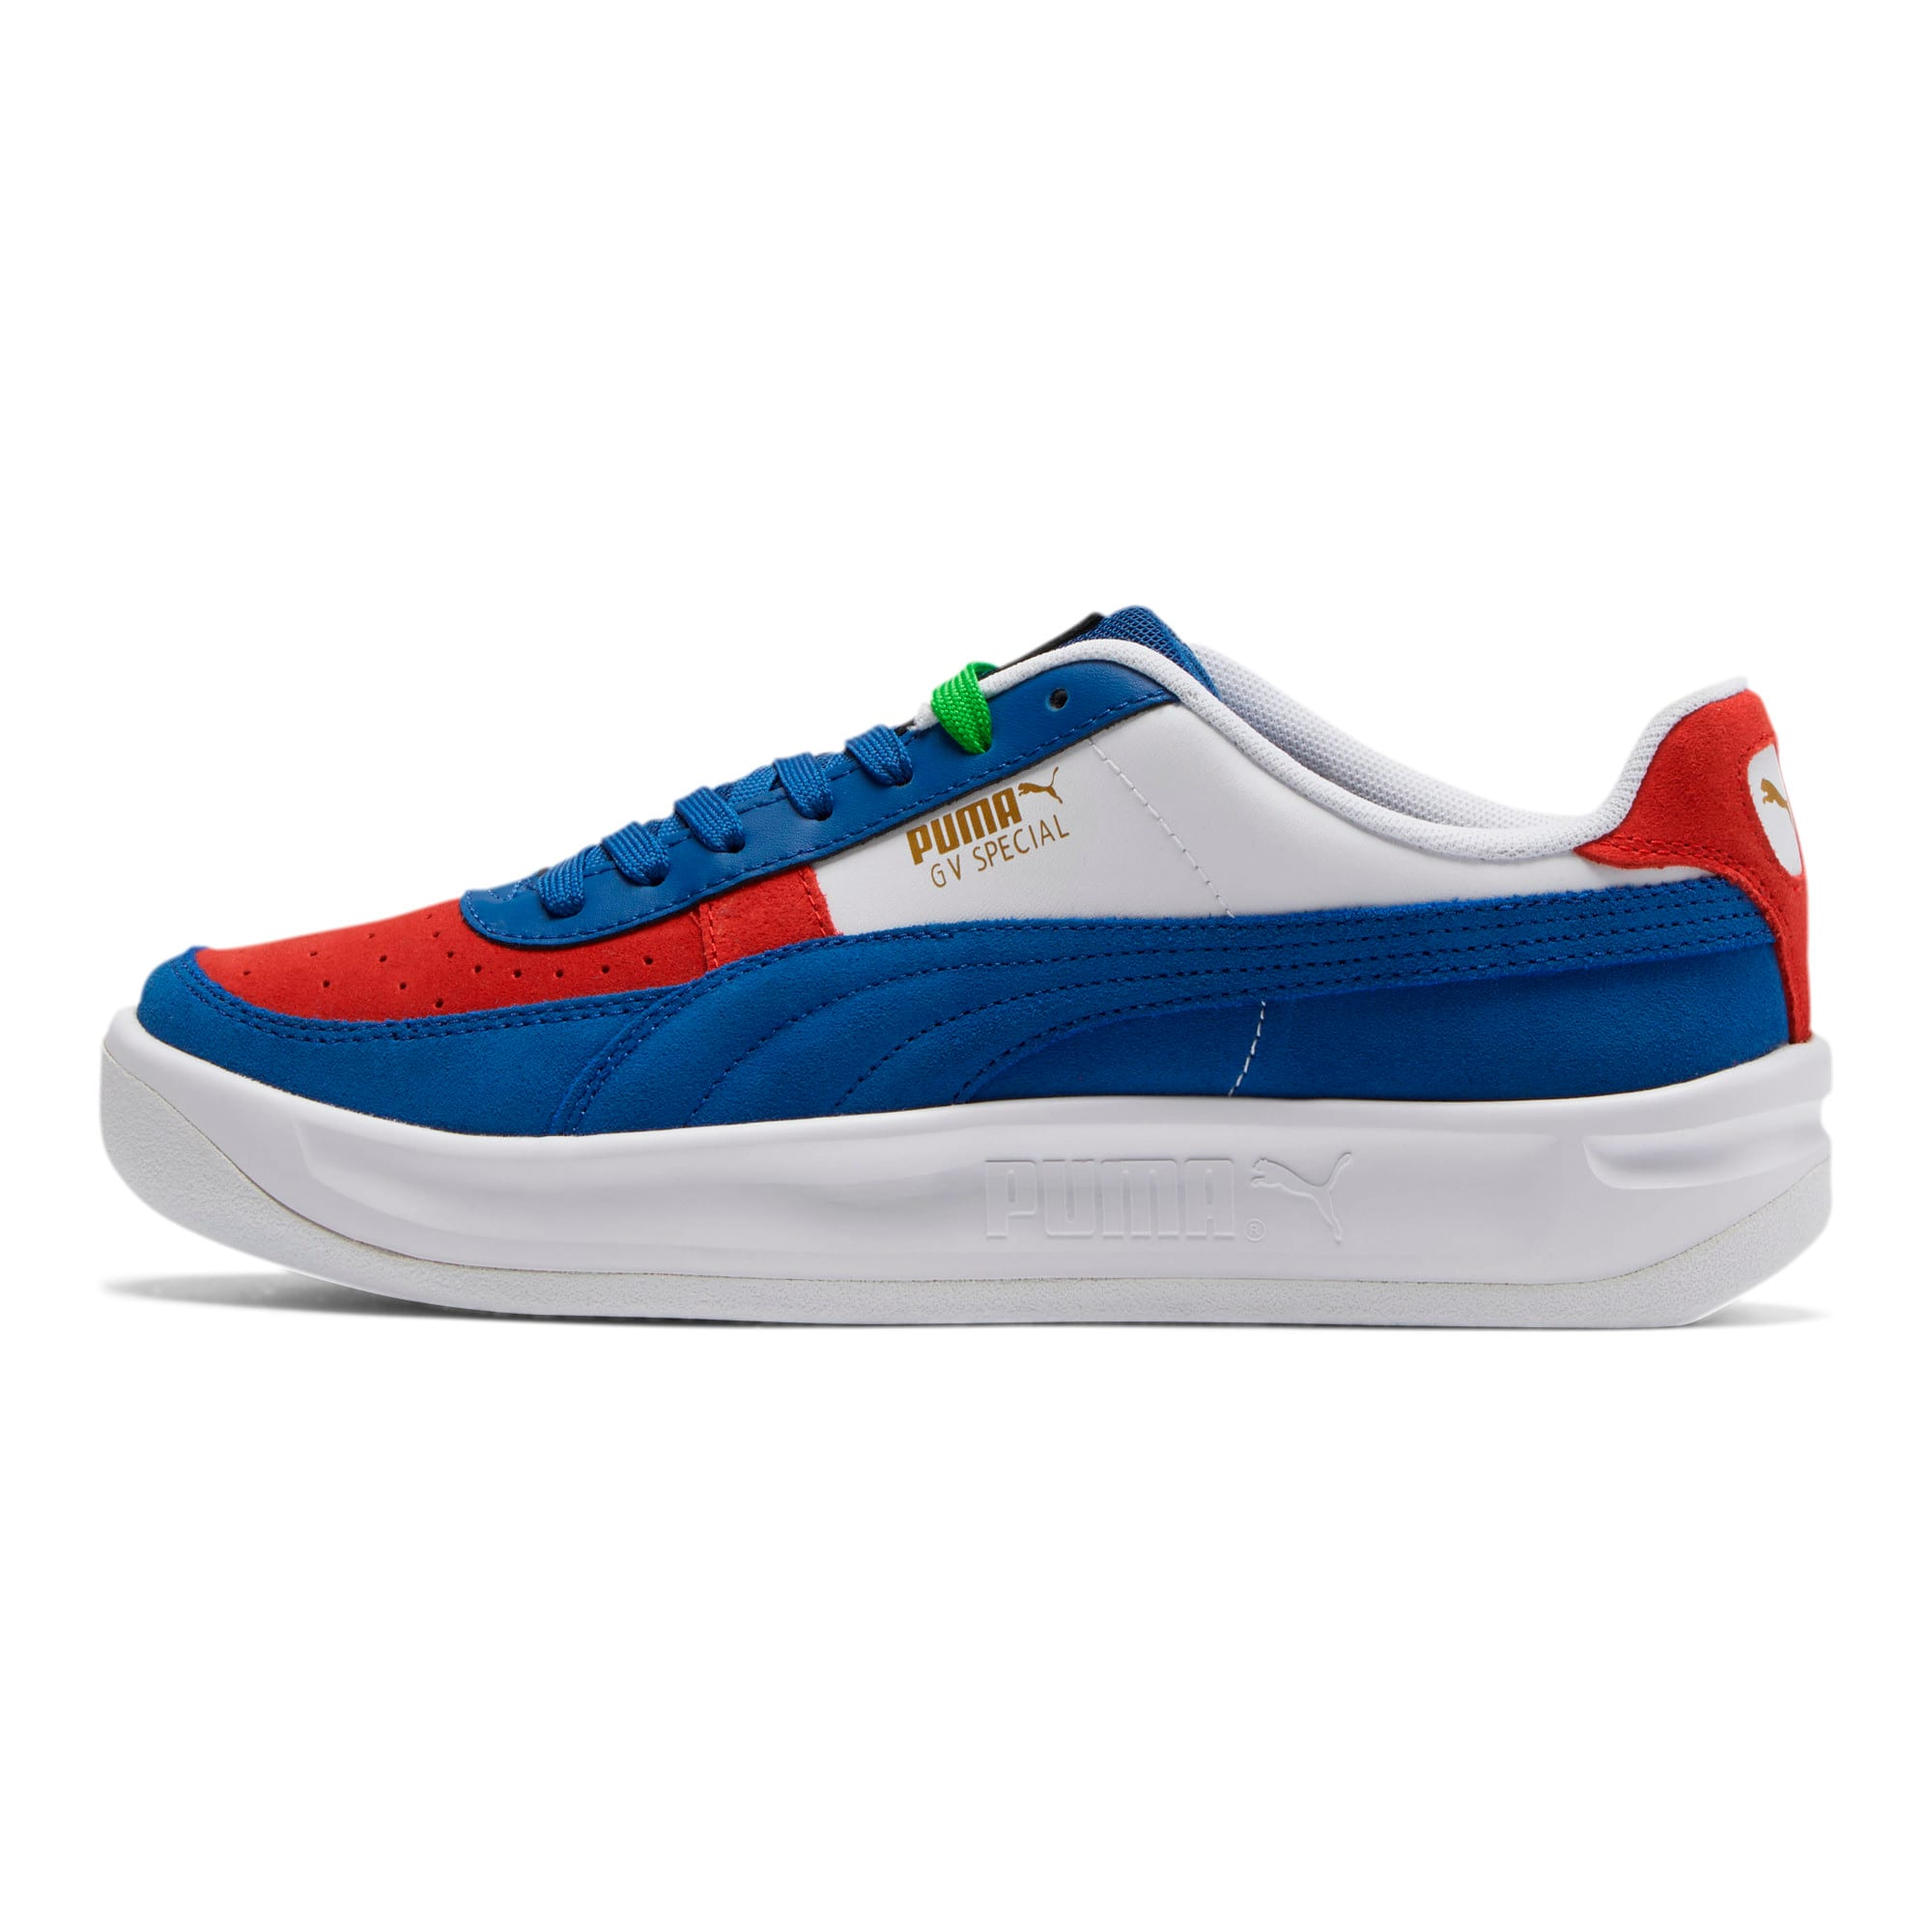 Thumbnail 1 of GV Special + Primary Sneakers, Gy Blue- White-High Risk Red, medium